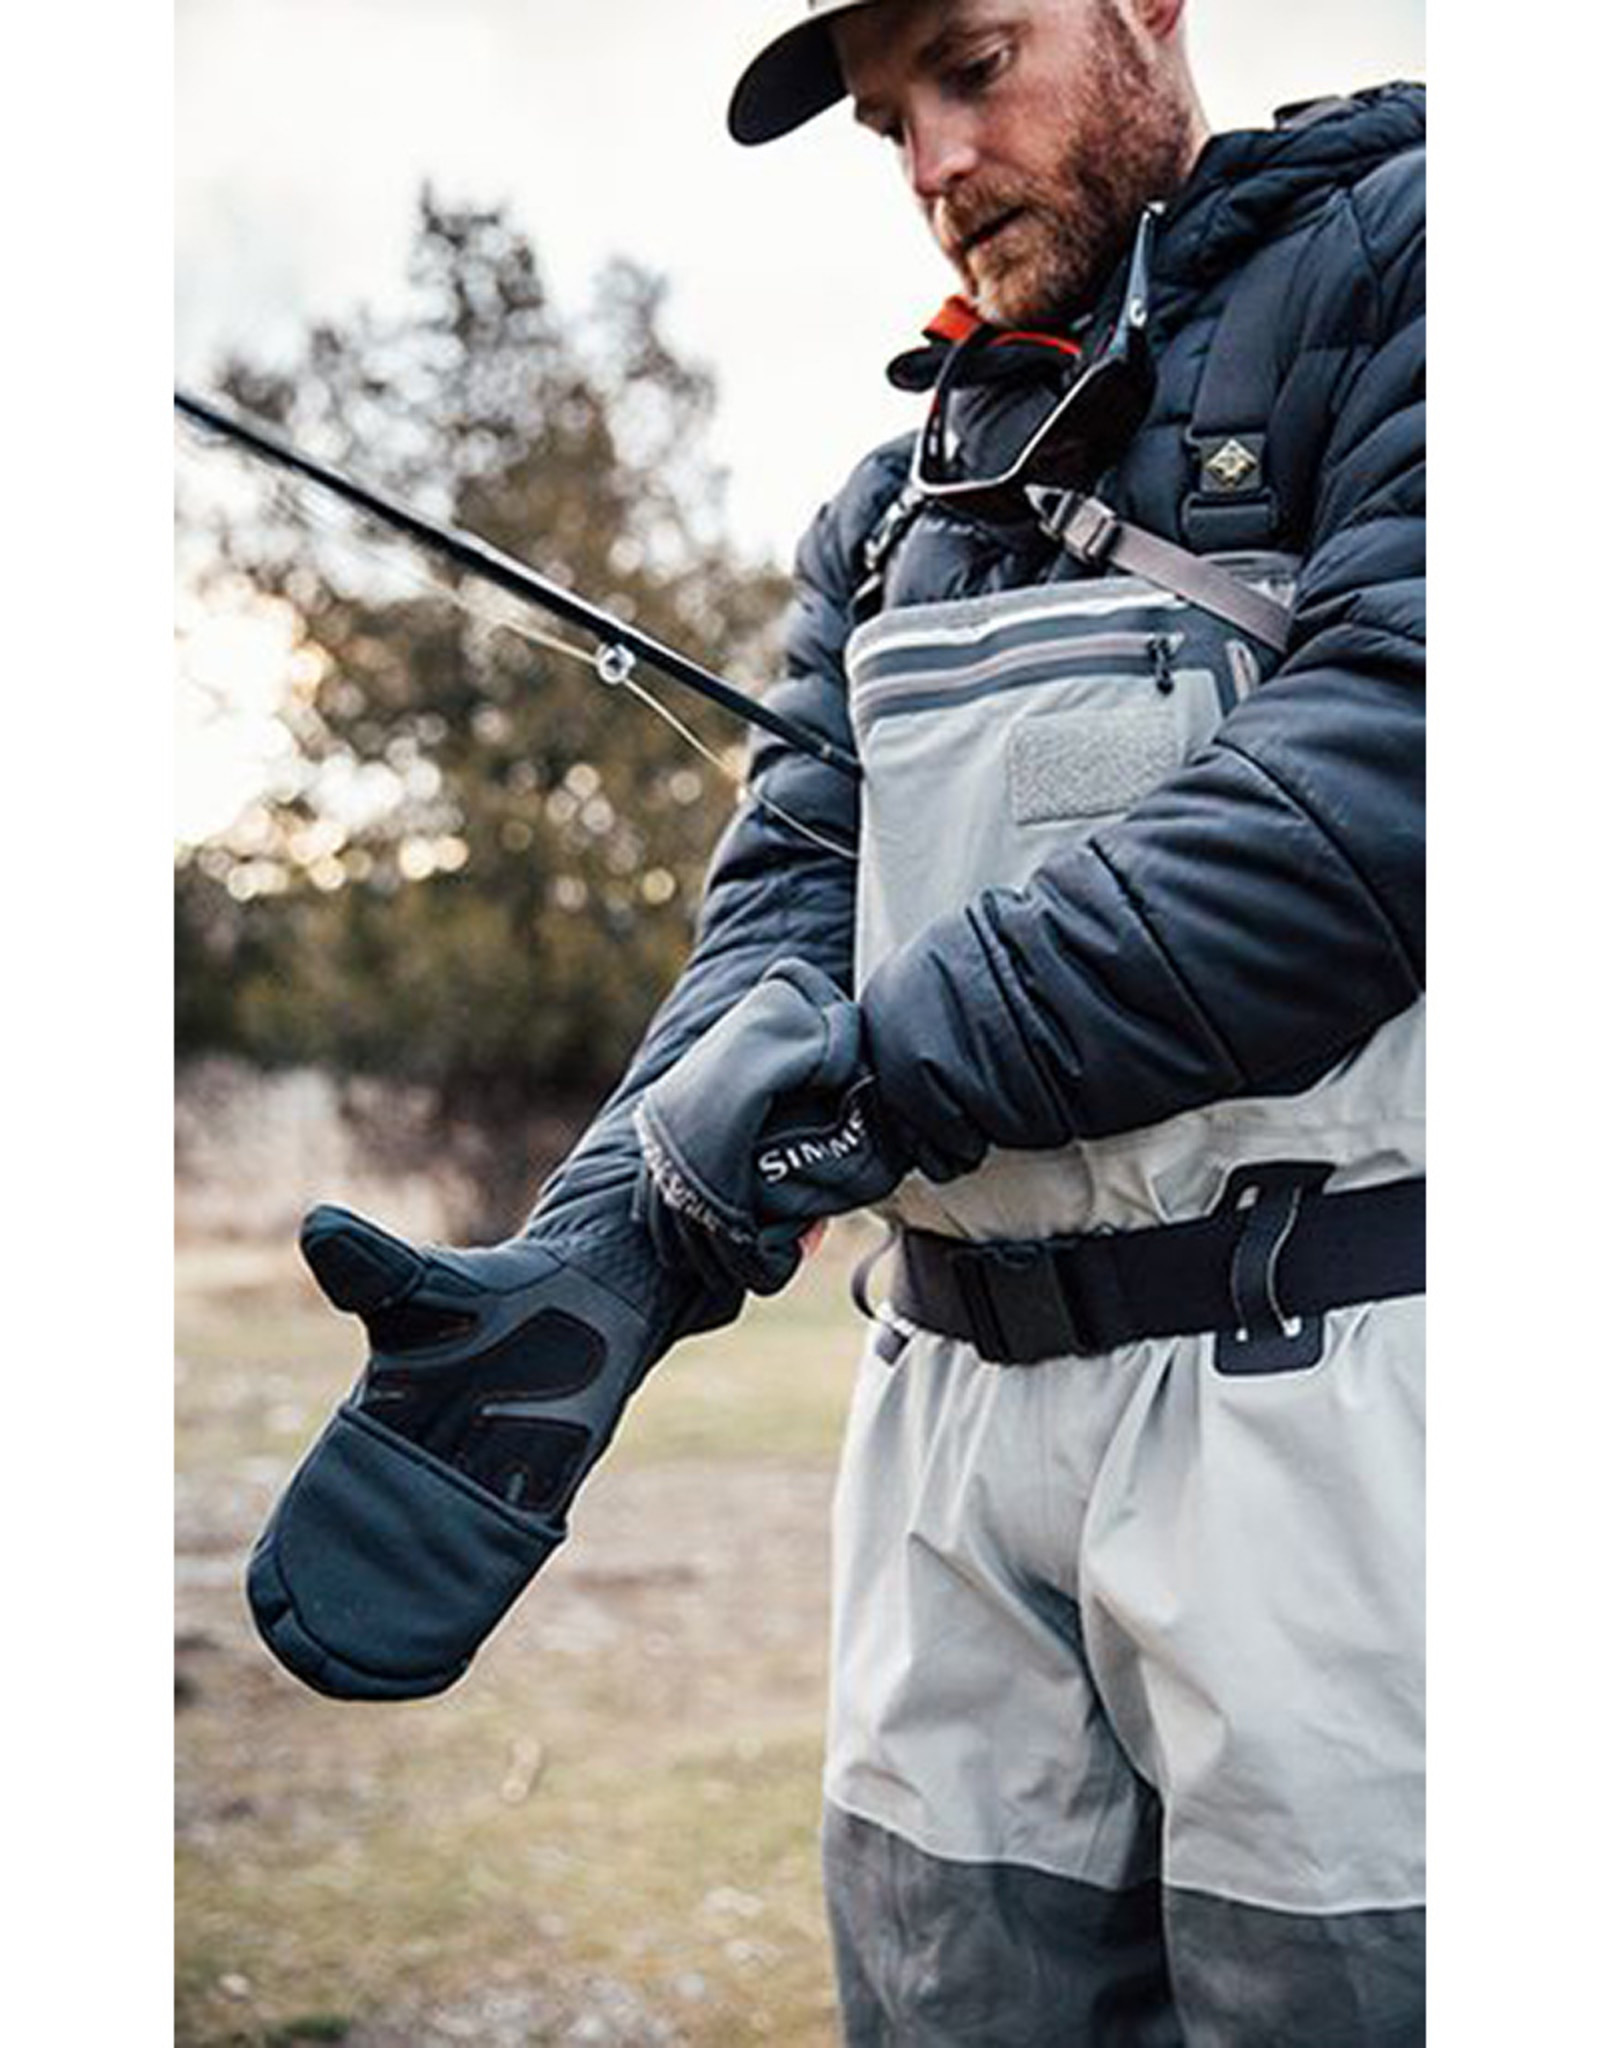 Simms G3 Guide Stockingfoot